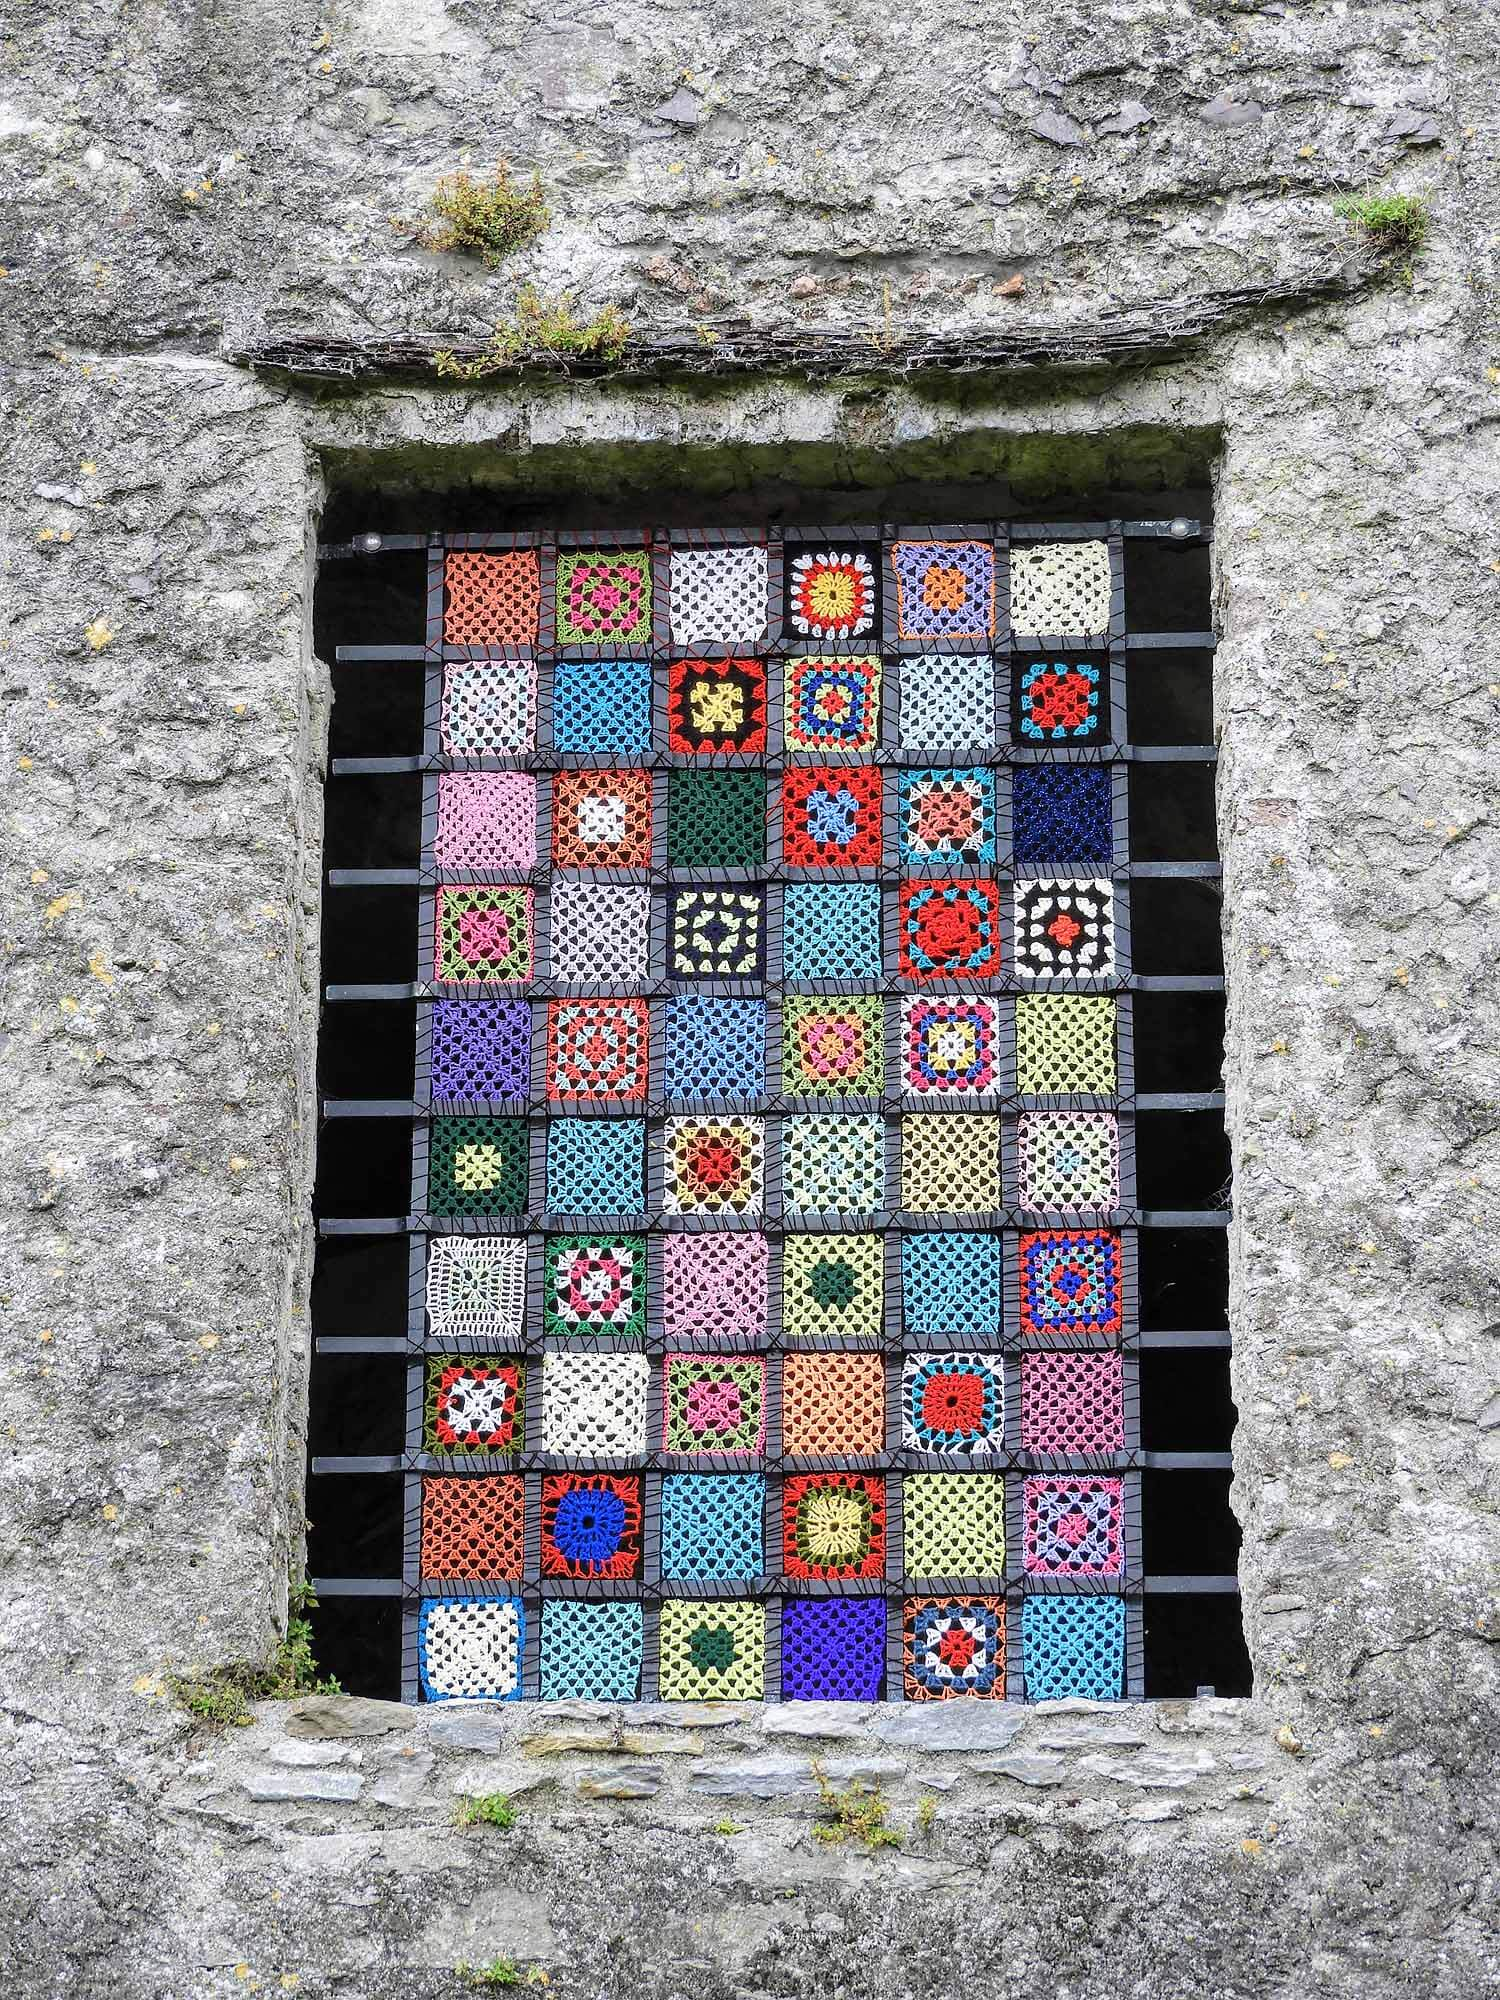 ireland-blarney-castle-window-wrought-iron-crochet.jpg